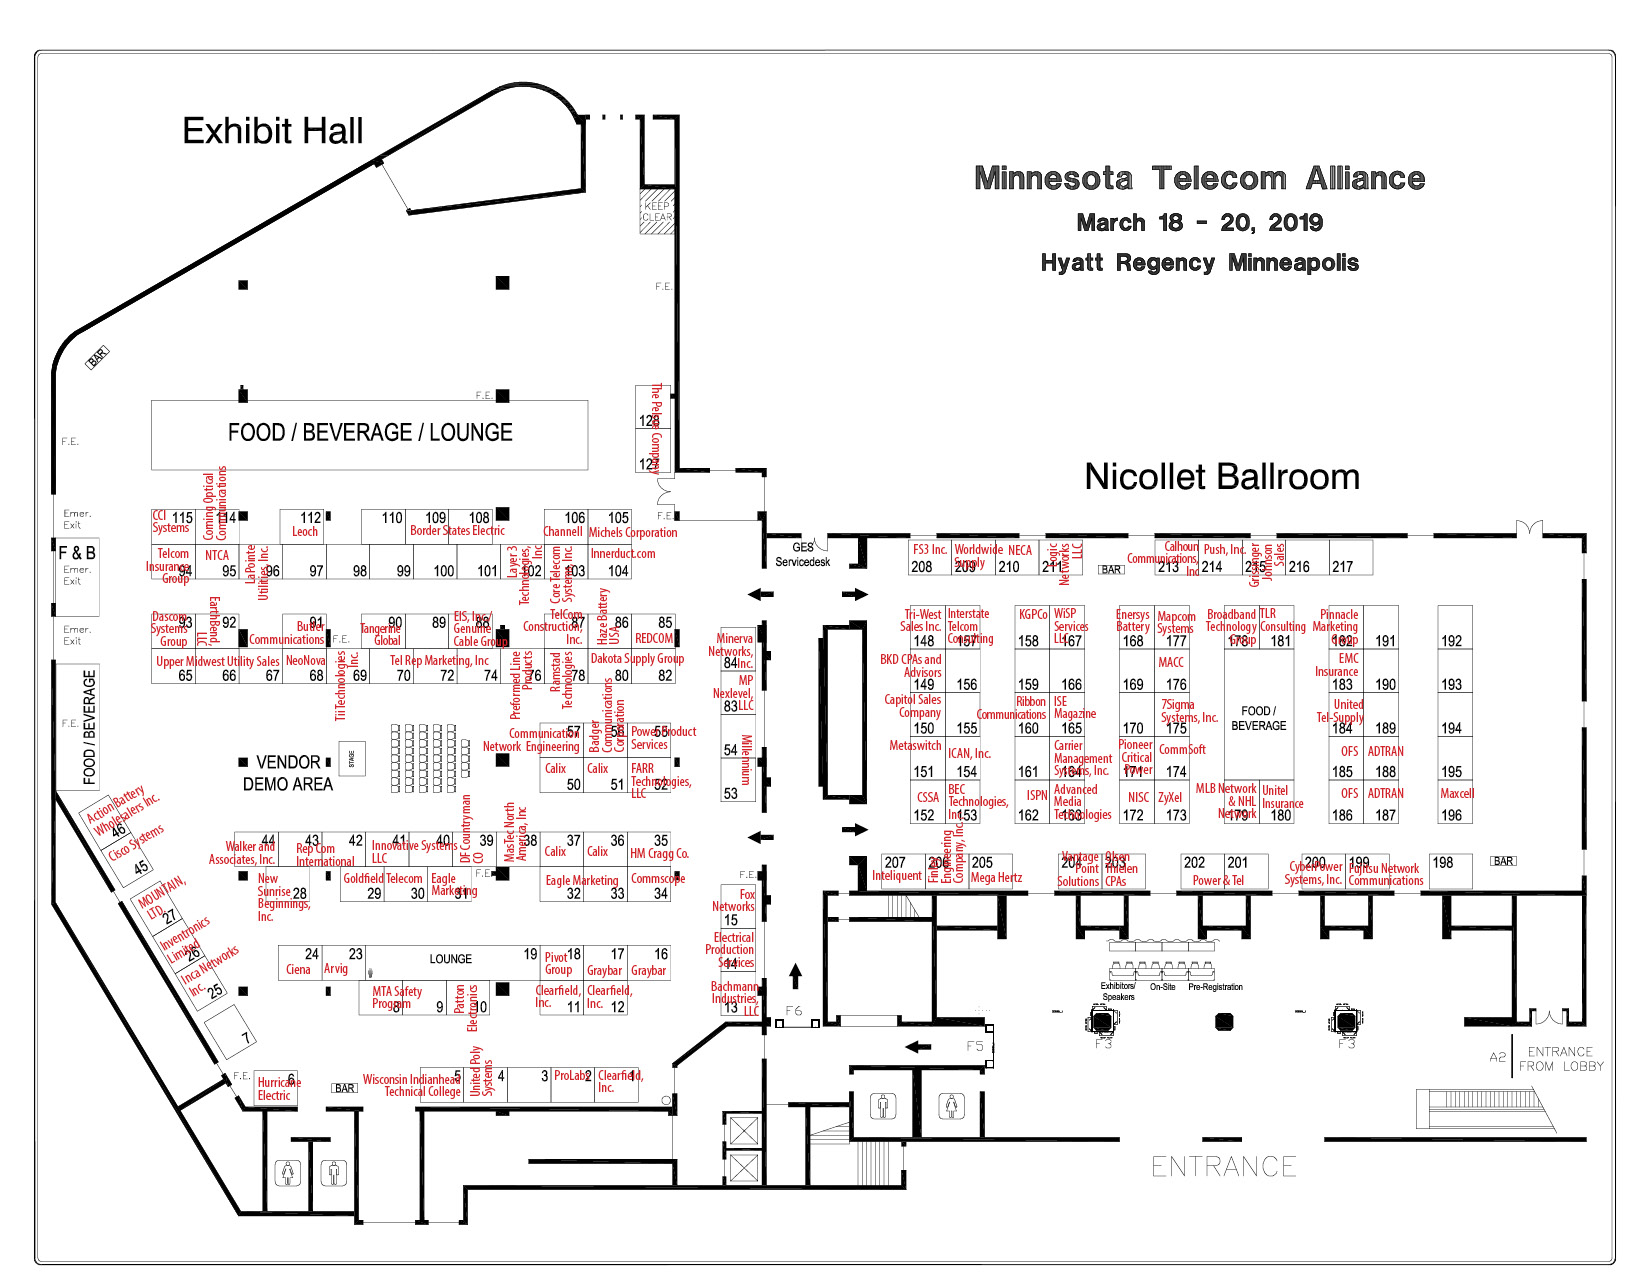 MTA 2019 Convention Exhibitor Floorplan